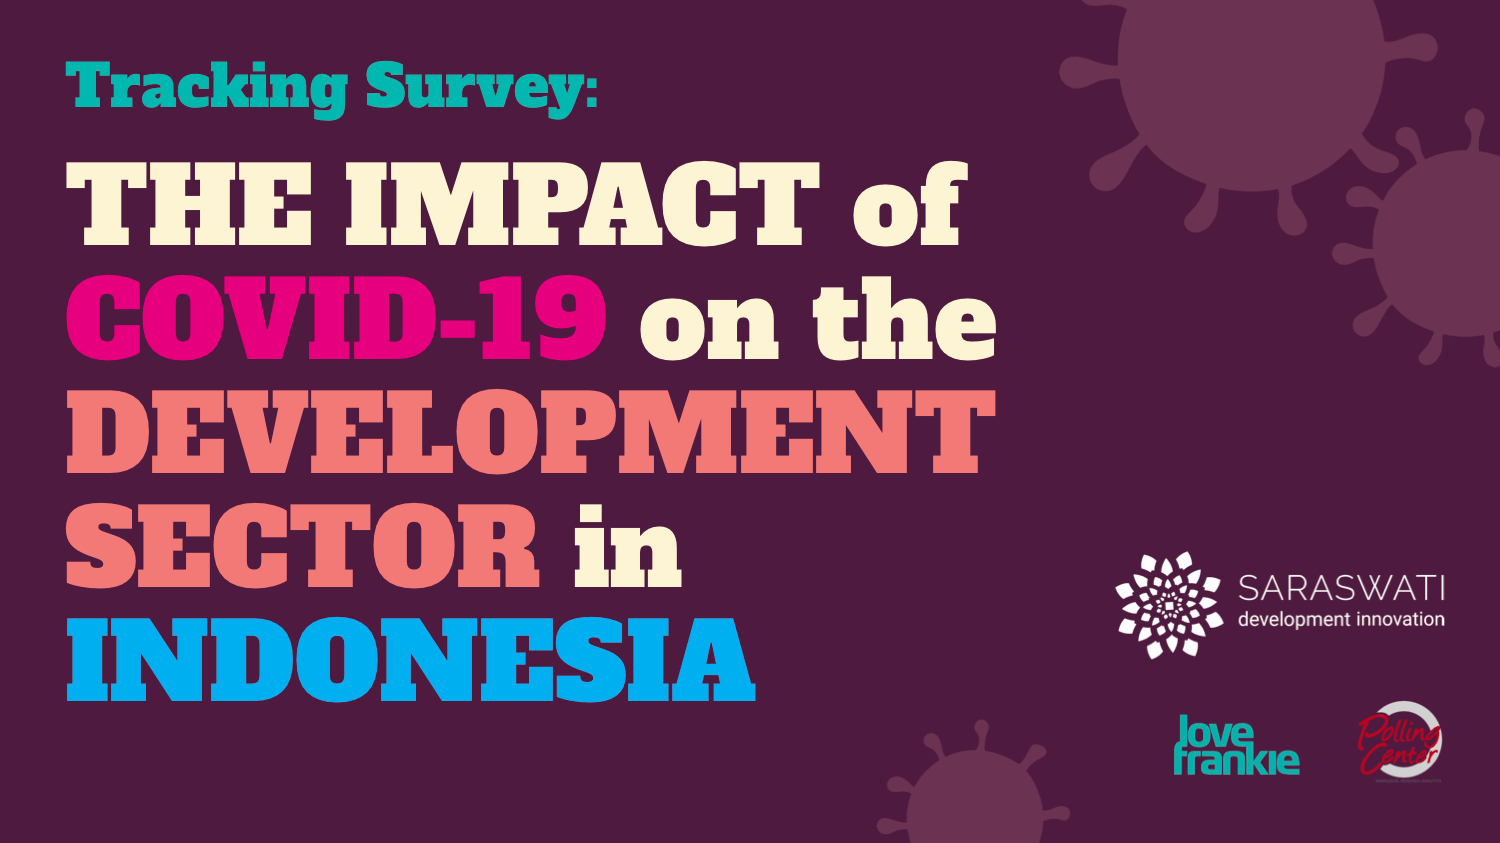 Tracking Survey: THE IMPACT of COVID-19 on the DEVELOPMENT SECTOR in INDONESIA